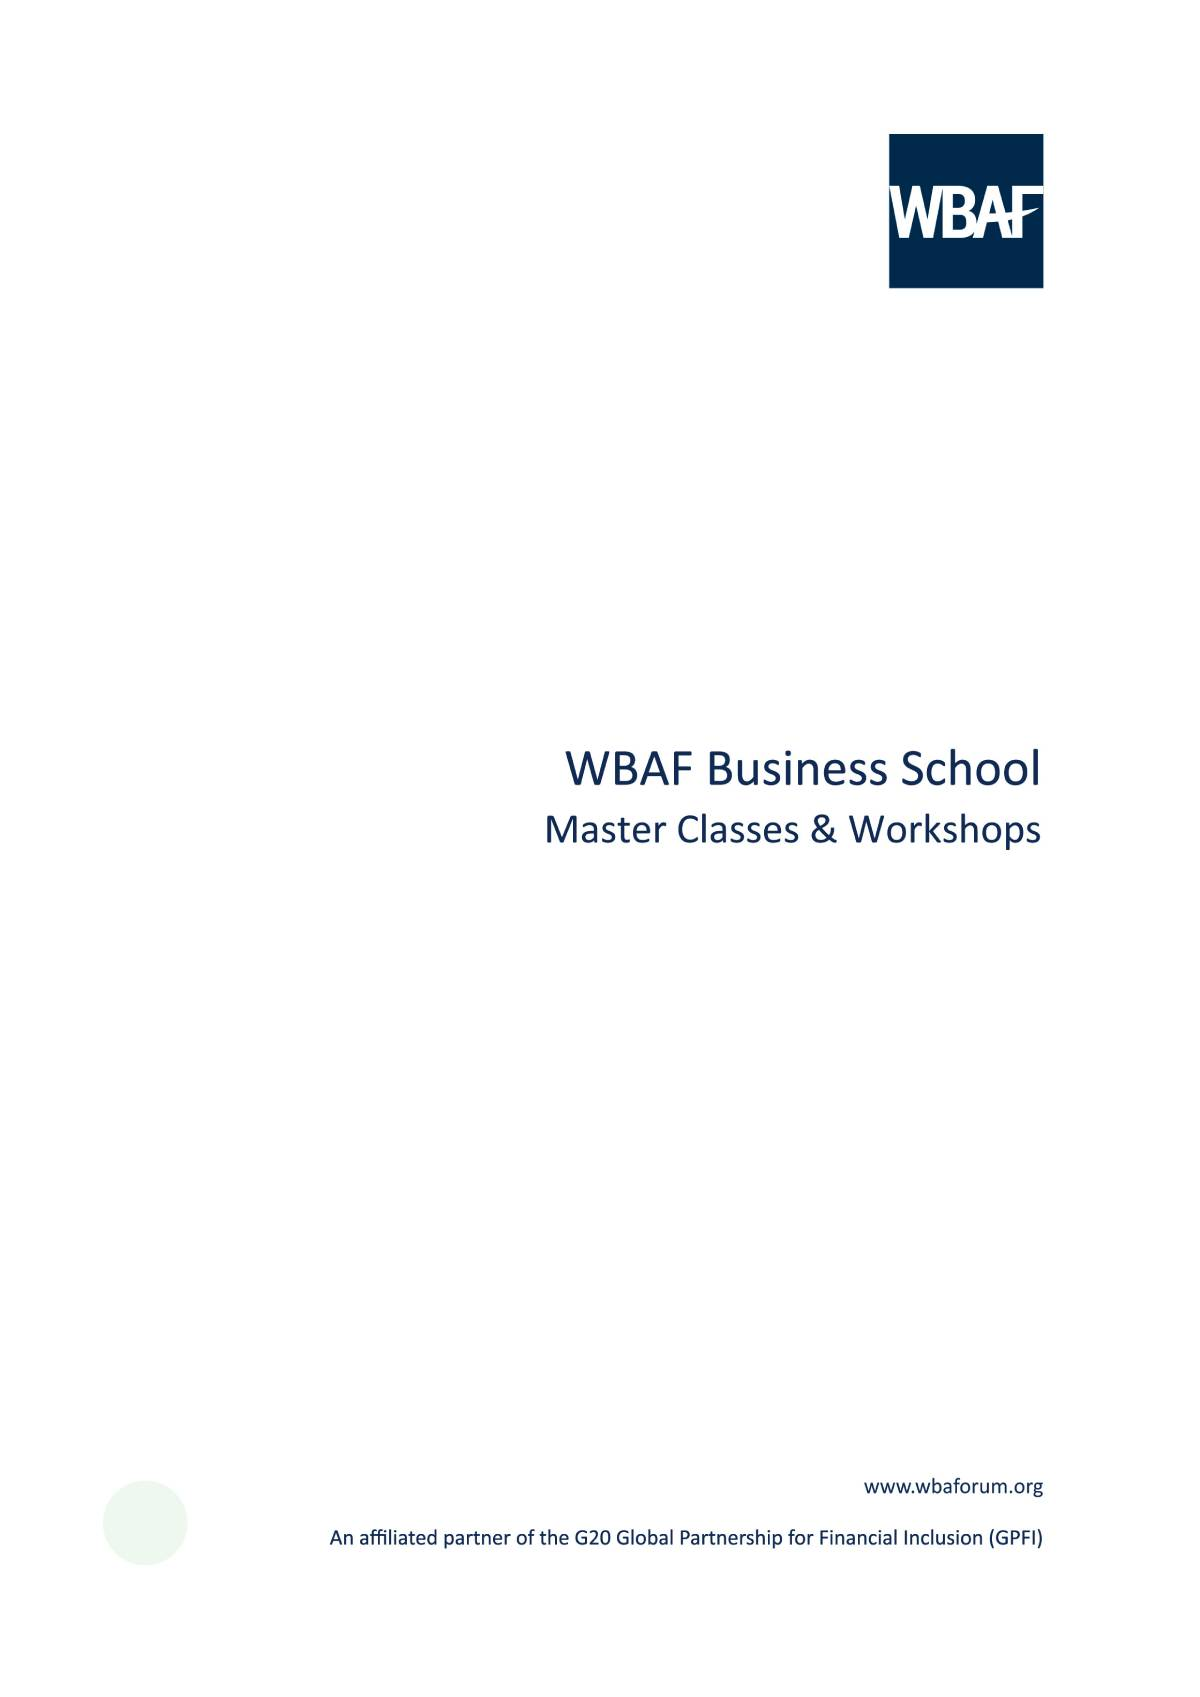 Wbaf Business School - Master Classes